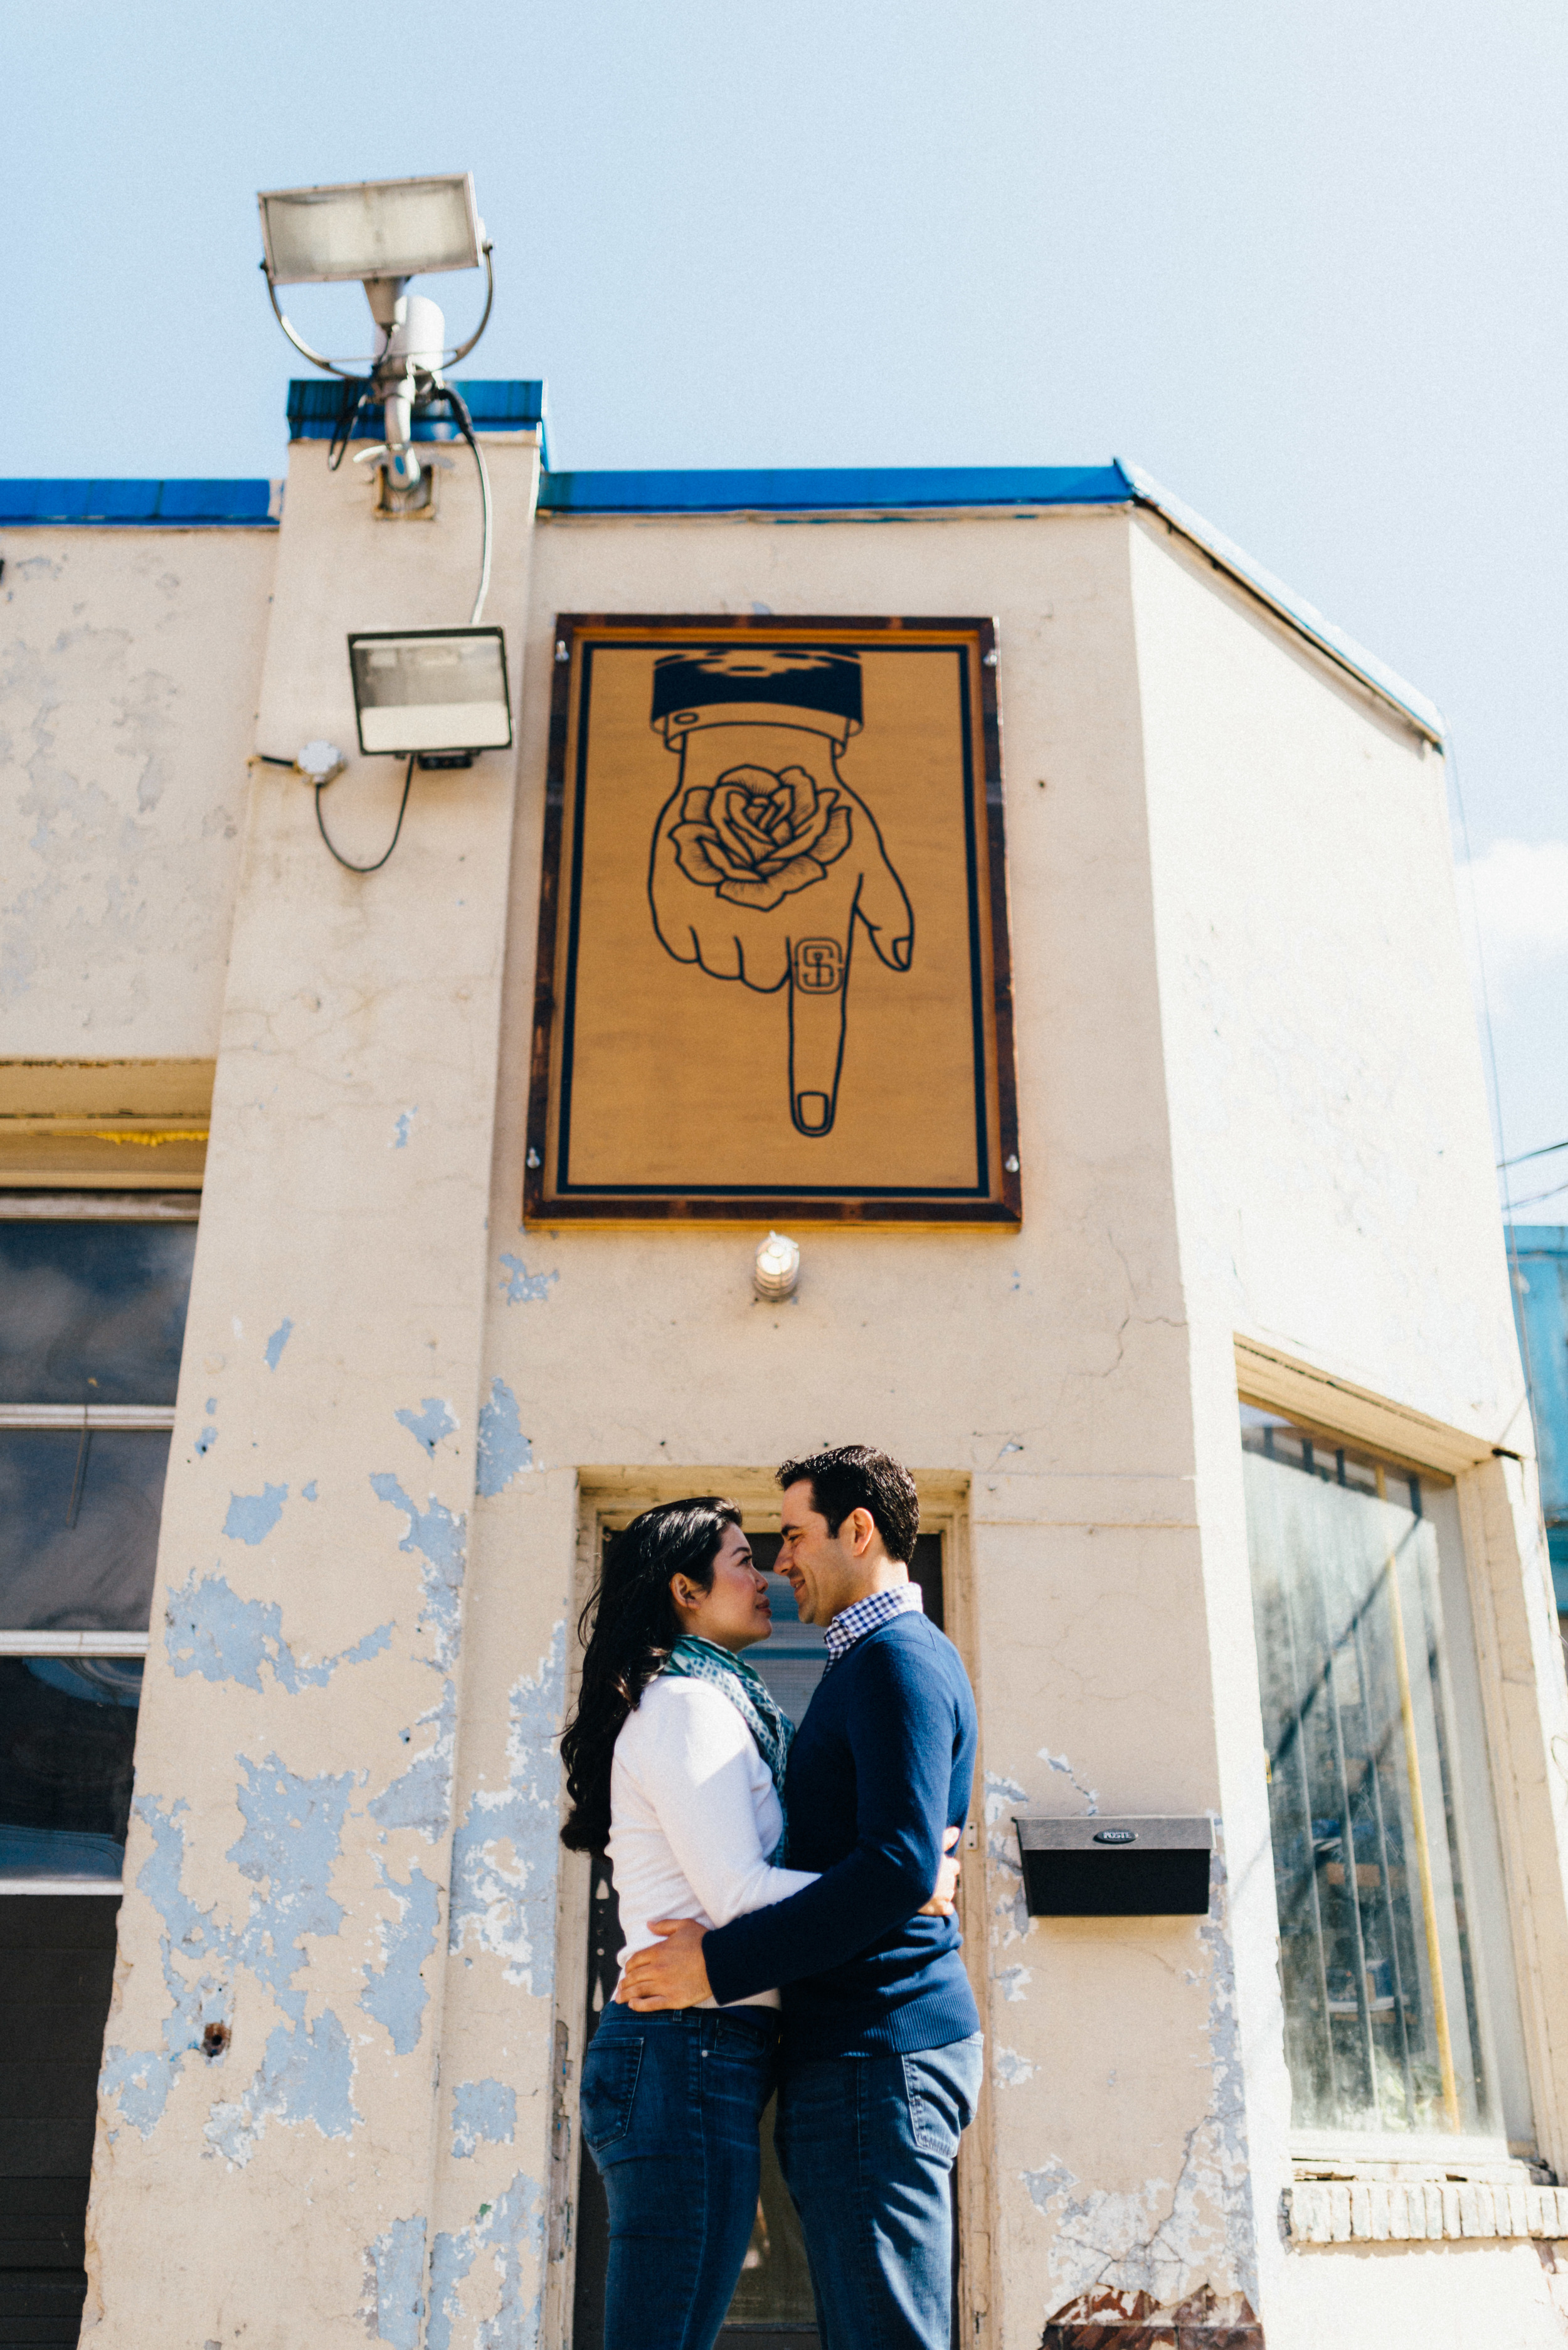 Another creative, funny photograph of couple below sign